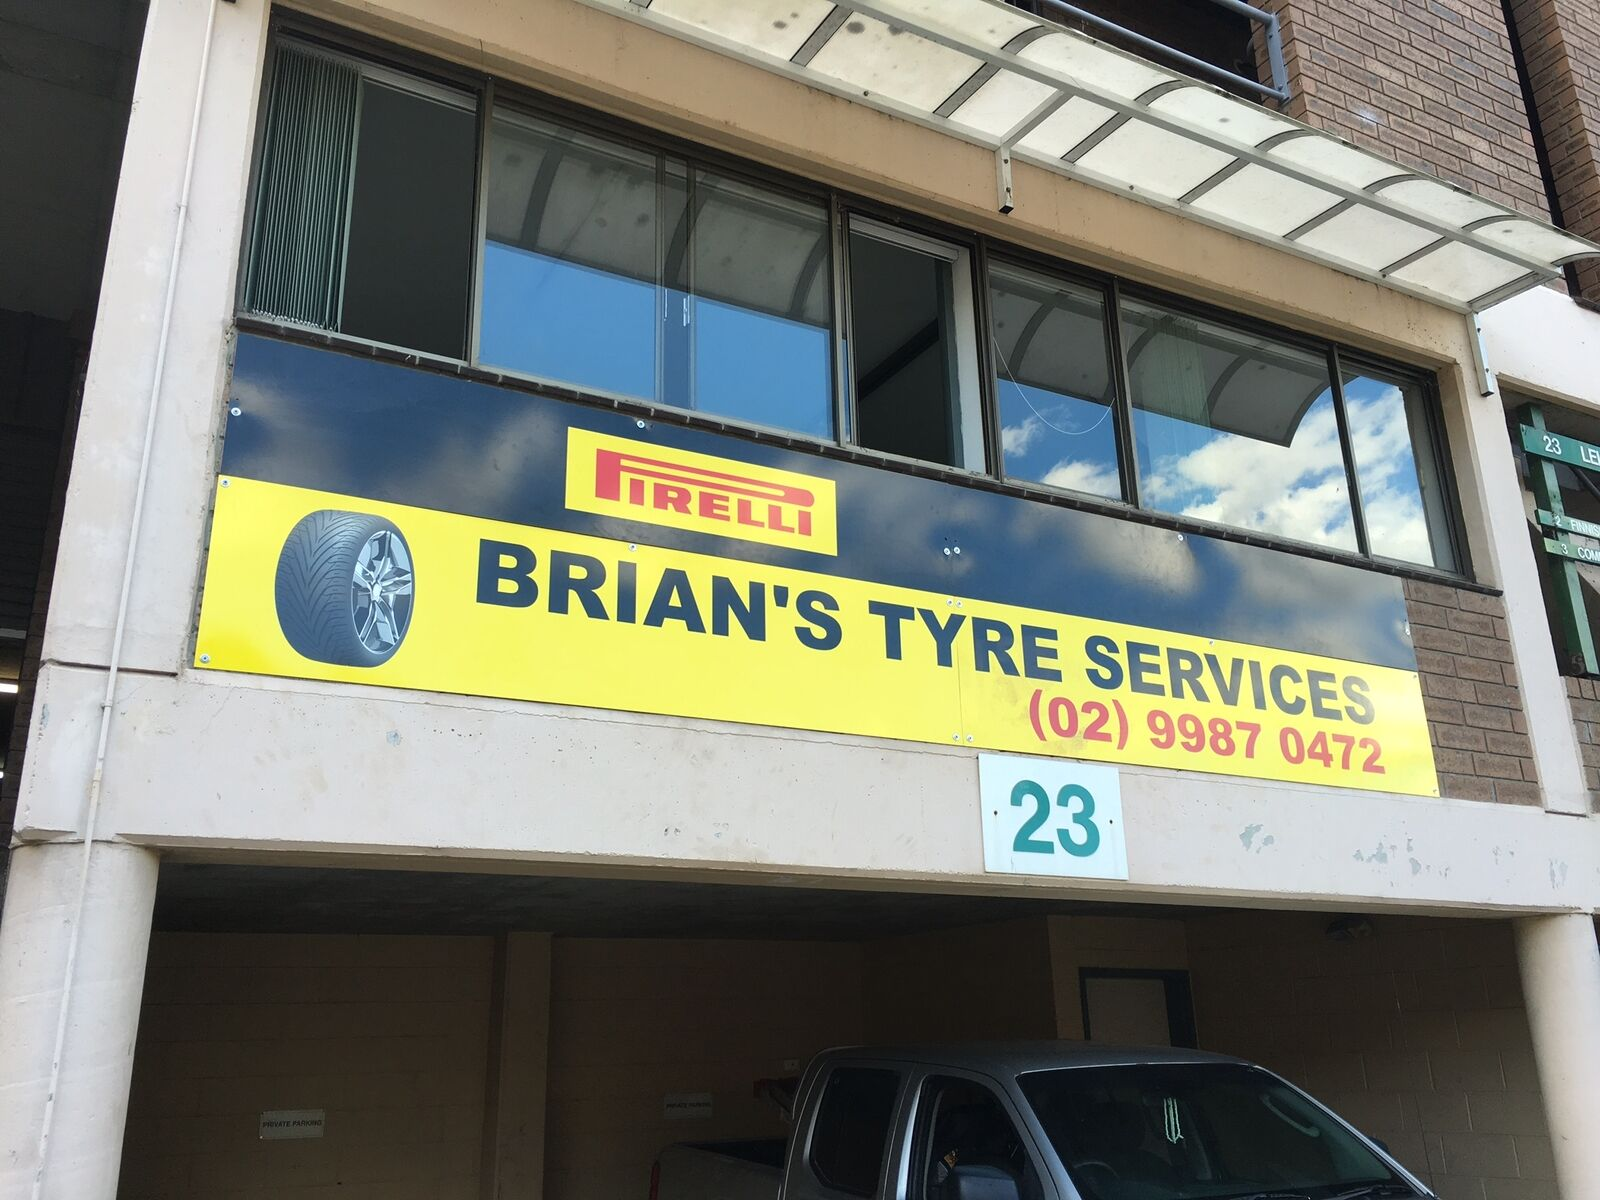 Brian's Tyre Services